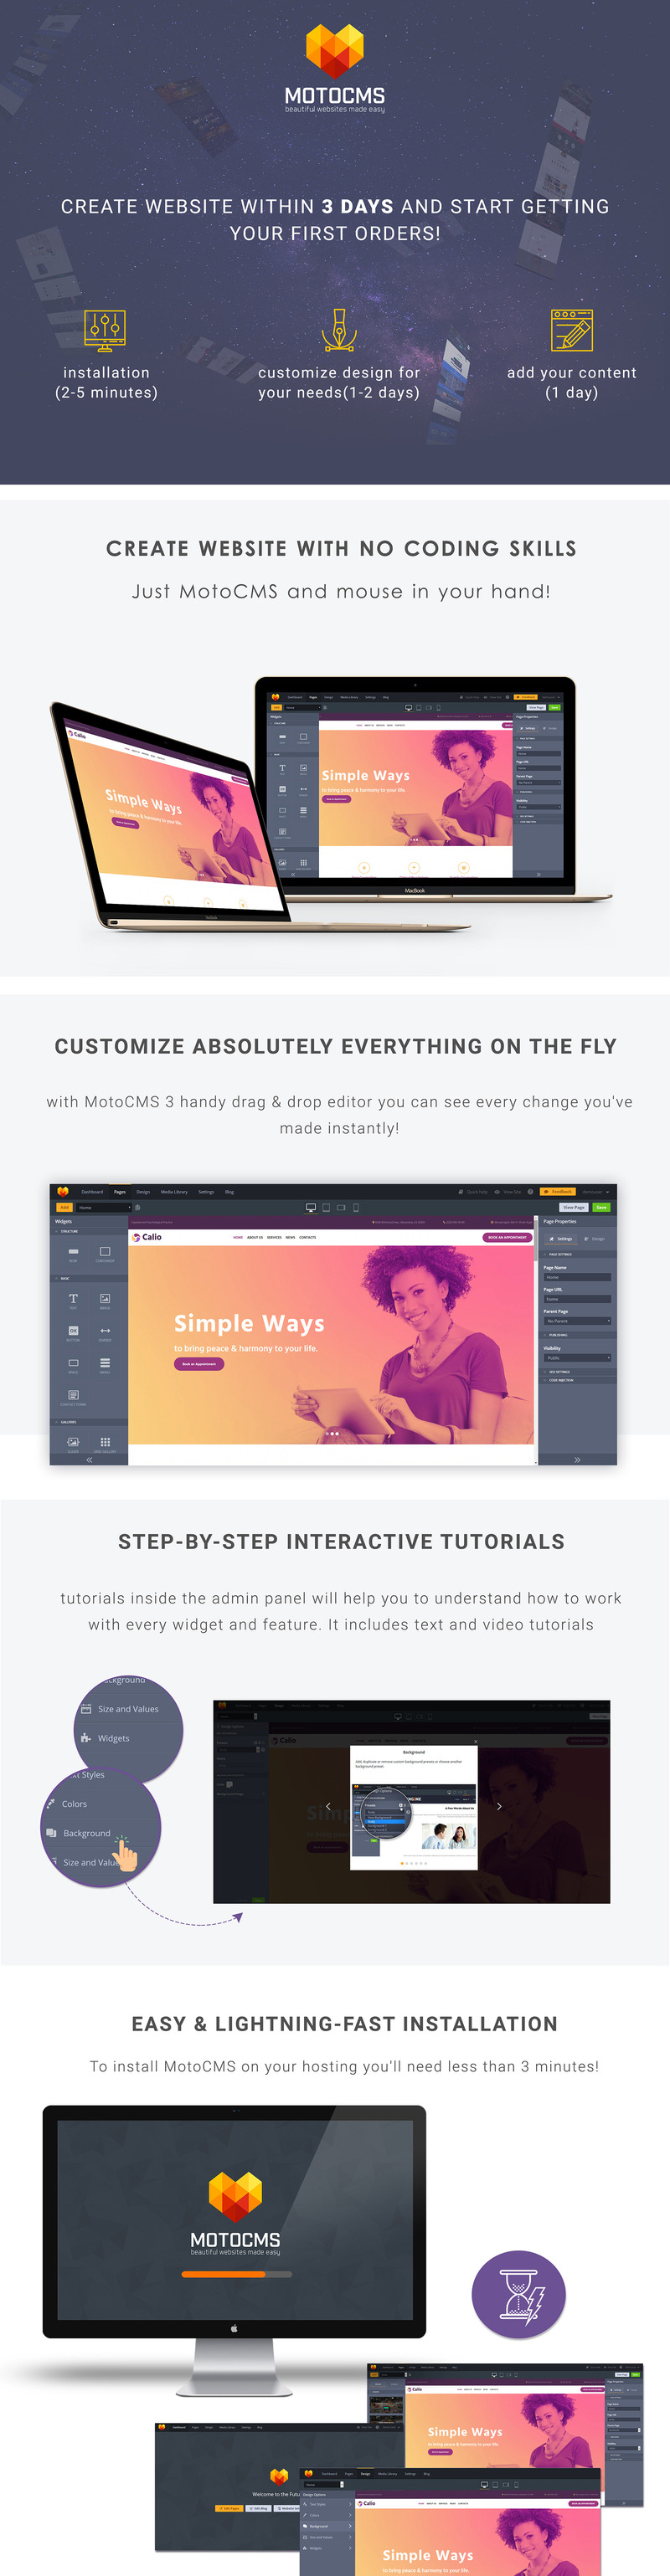 Calio - Psychology Moto CMS 3 Template - Features Image 1